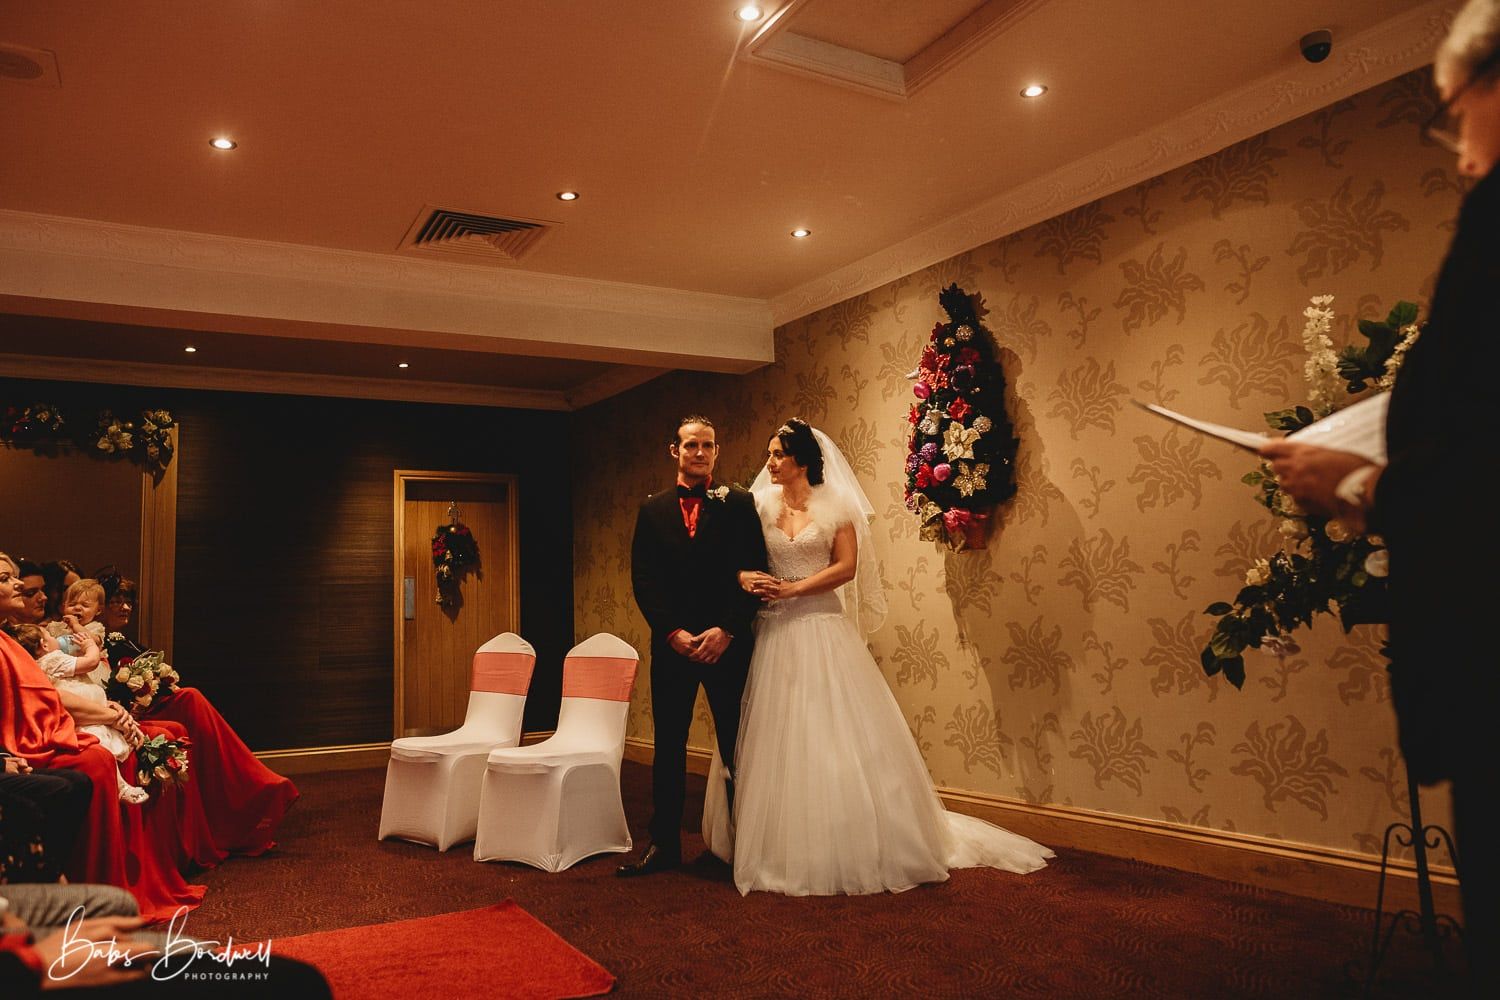 bride and groom linking arms in ceremony room of Holt Lodge North Wales